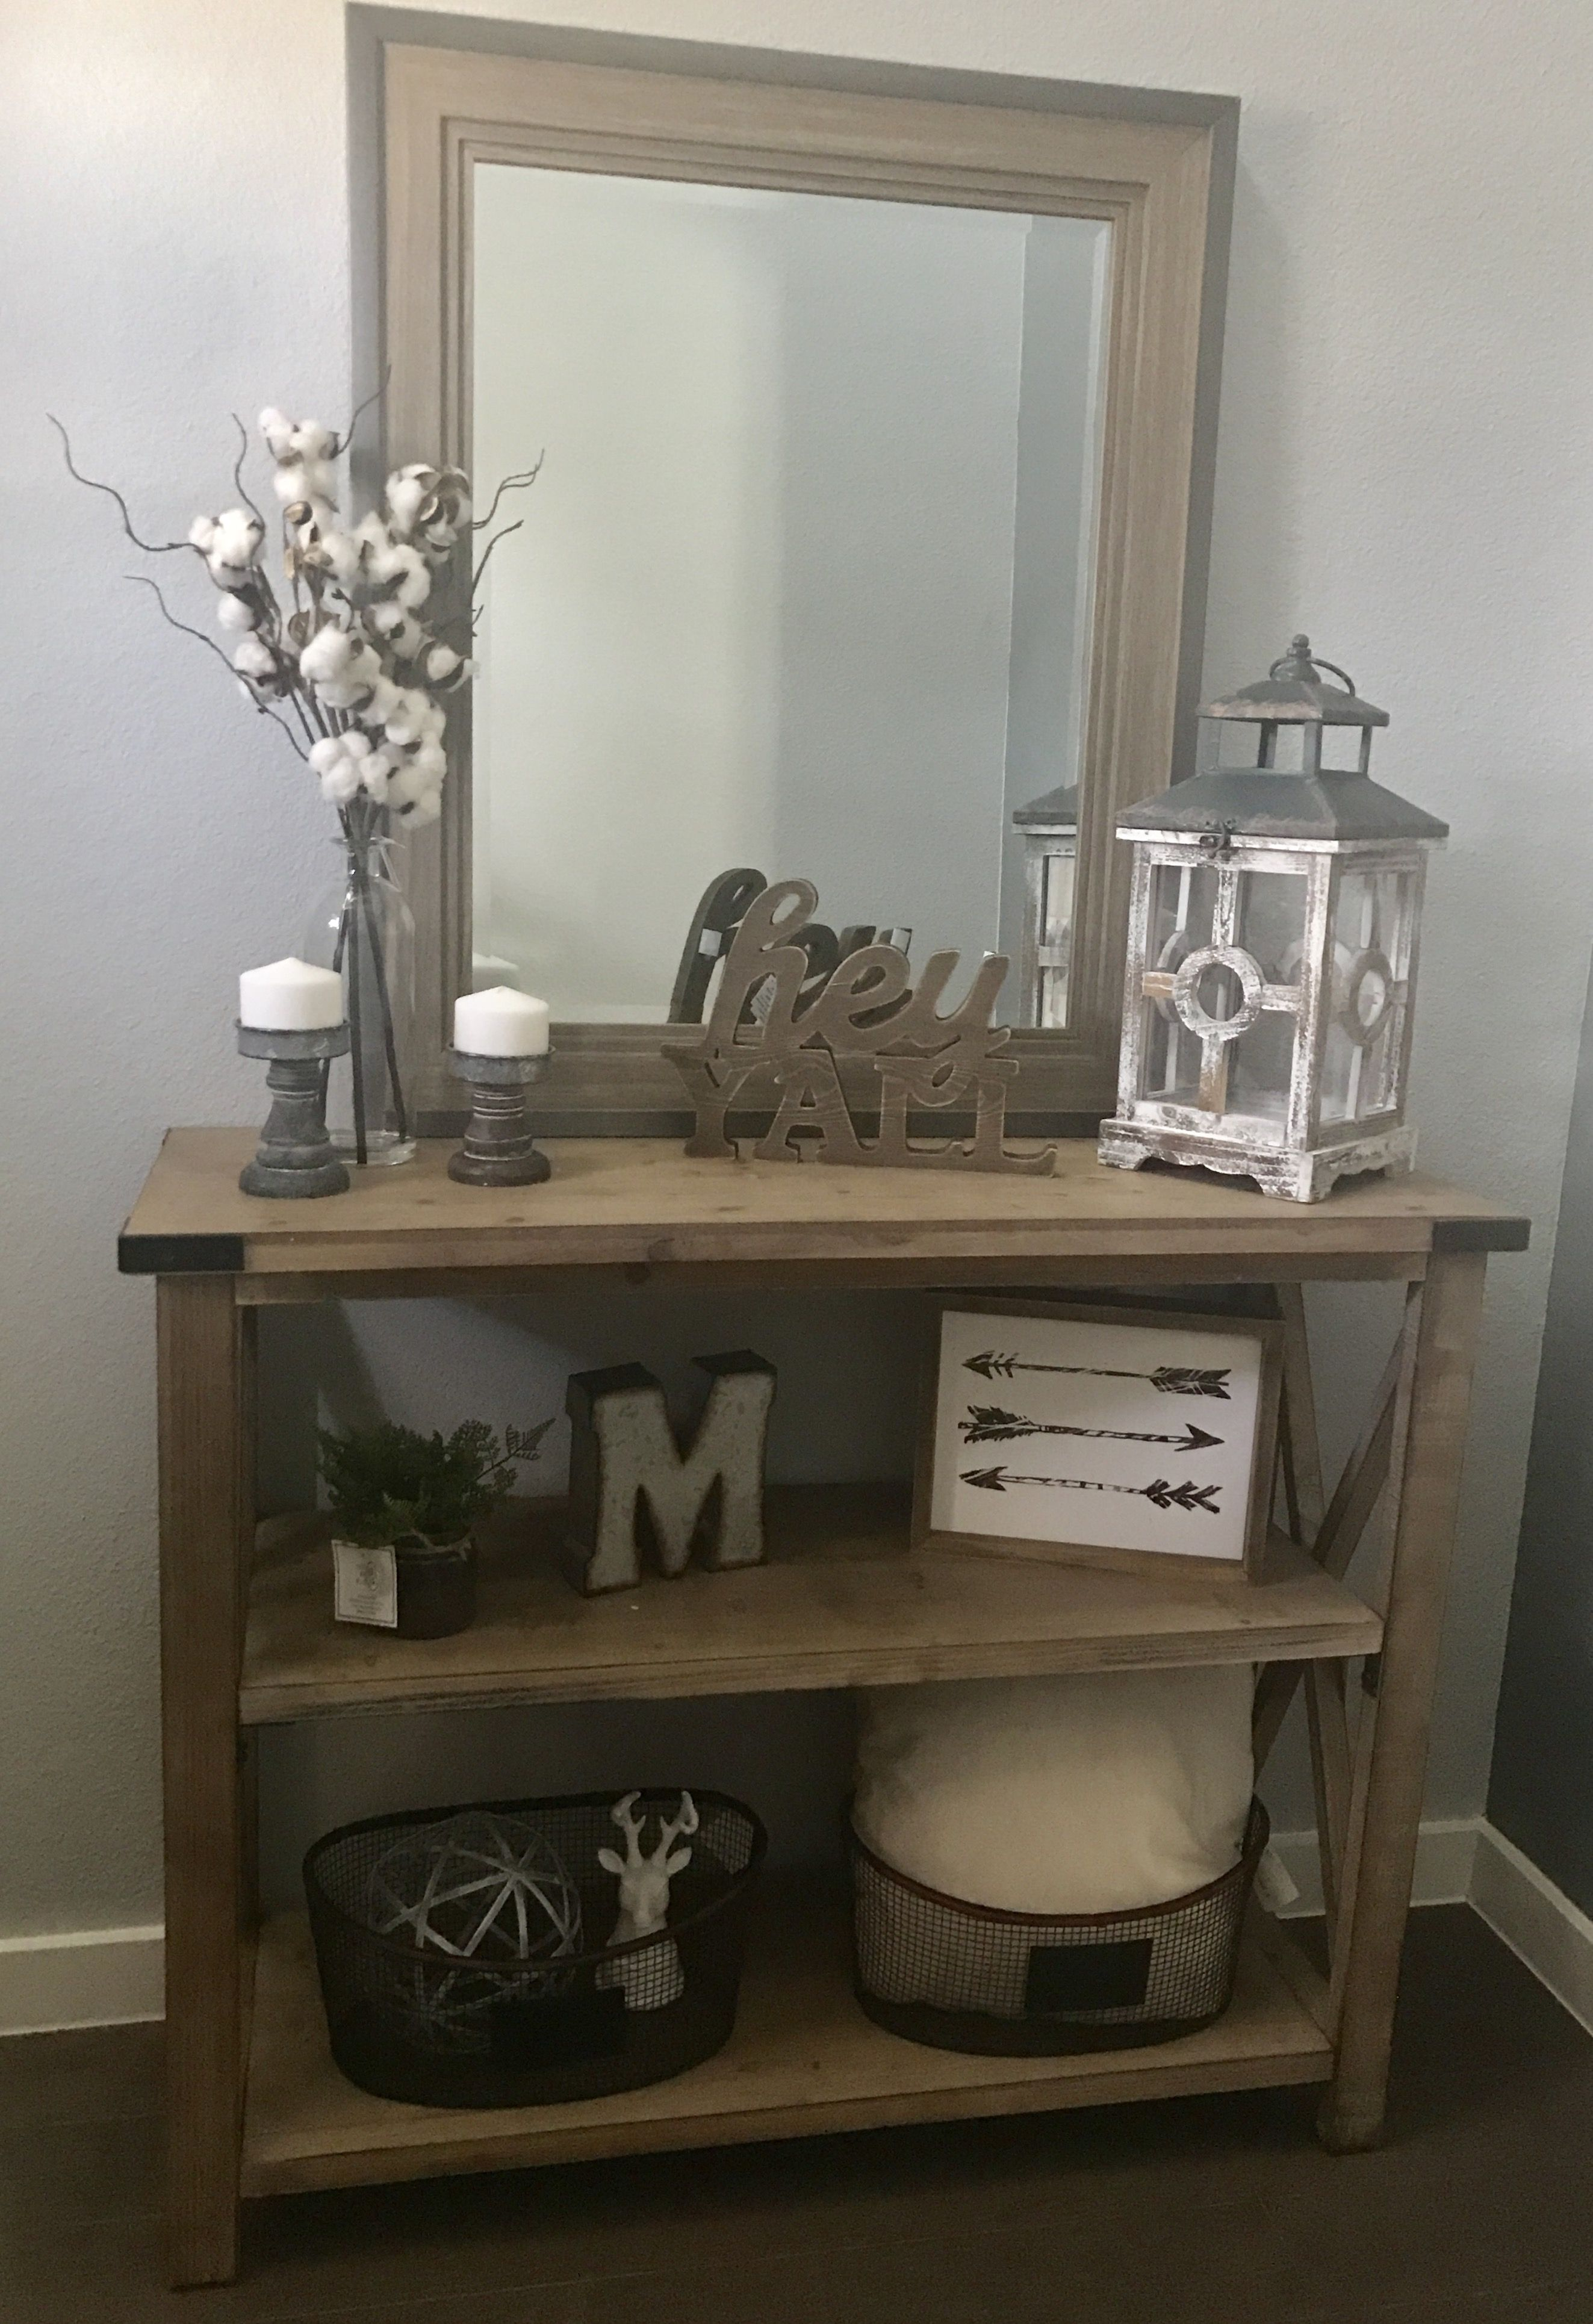 new modern farmhouse entry way console table decor mcmillen home accent mango wood dining frog rain drum long kitchen island wheels oversized comfy chair rustic outdoor furniture